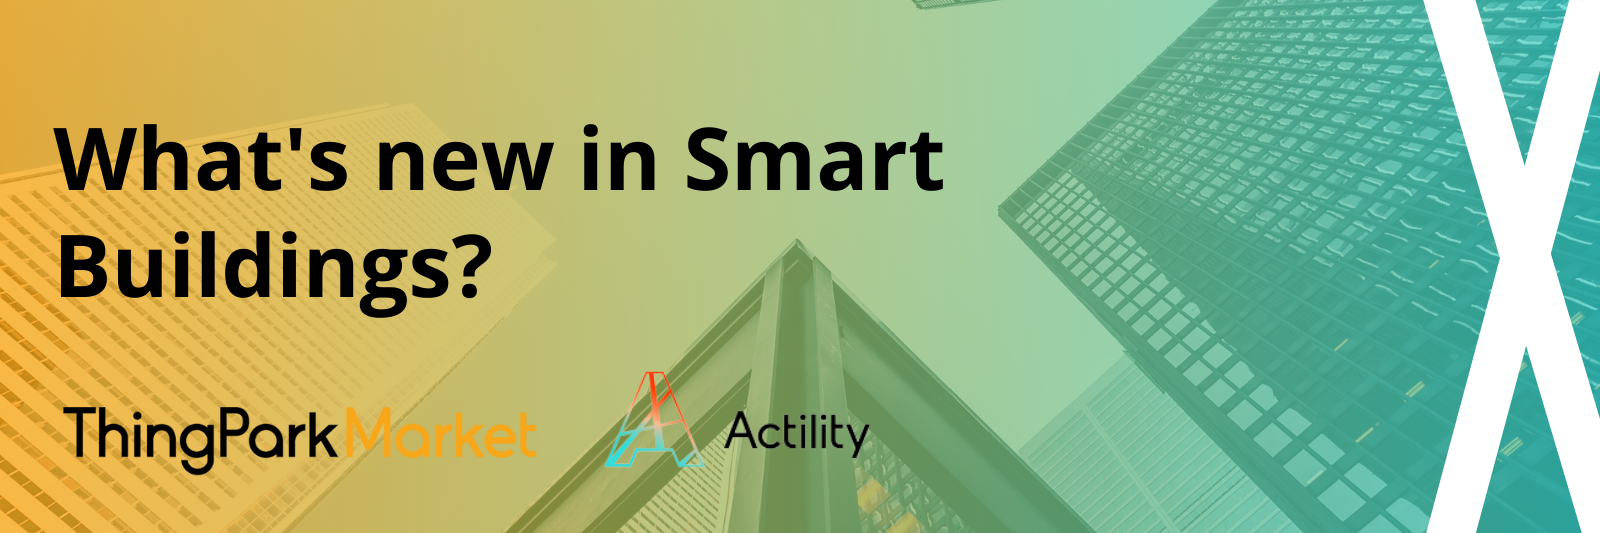 What is new in Smart Buildings?